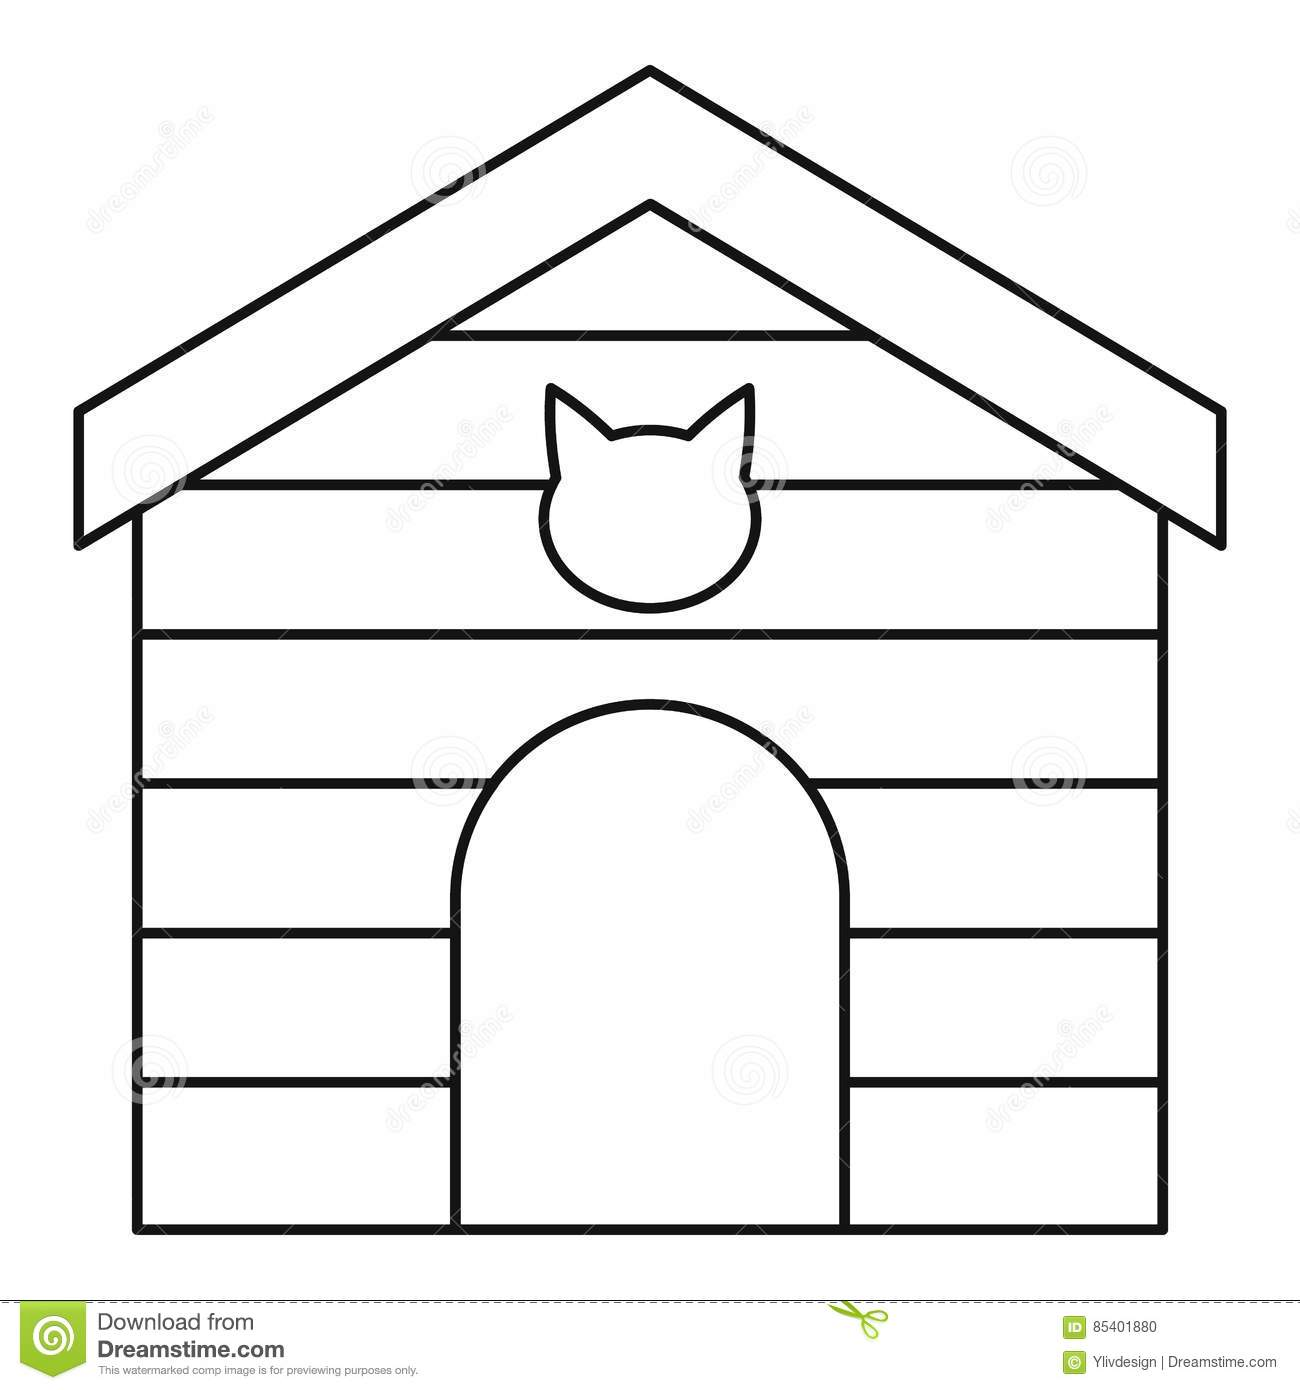 House outline picture - House Icon Outline